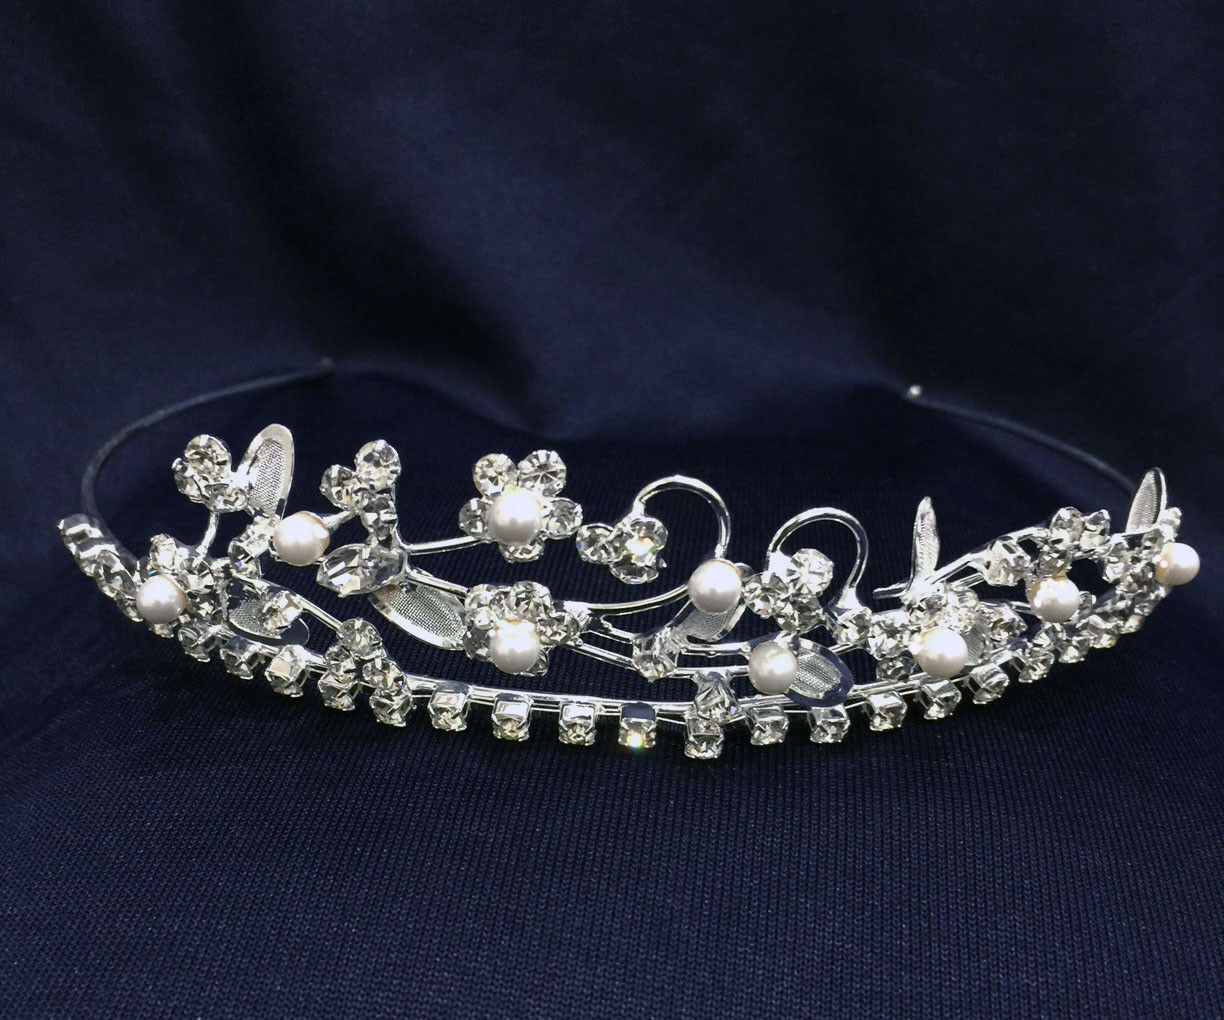 Crystal Rhinestones With Pearl /Tiara Silver Plated. 1.25